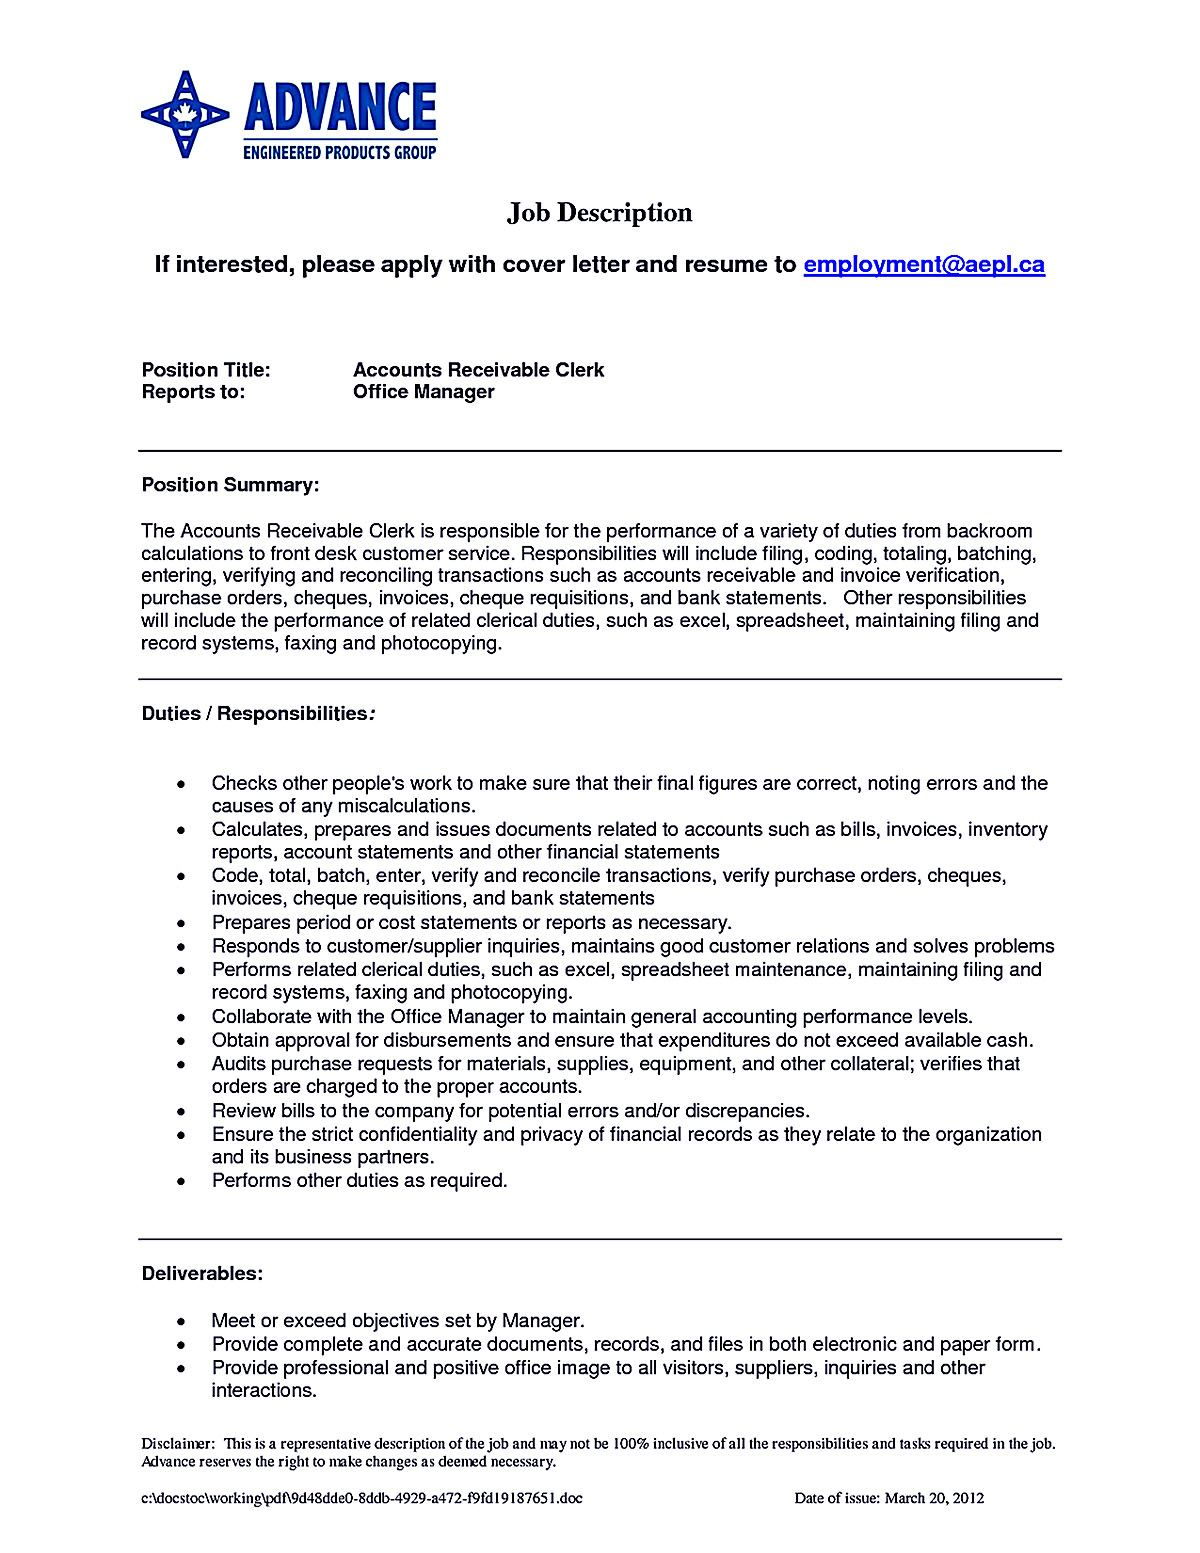 Account receivable resume shows both technical and interpersonal ...